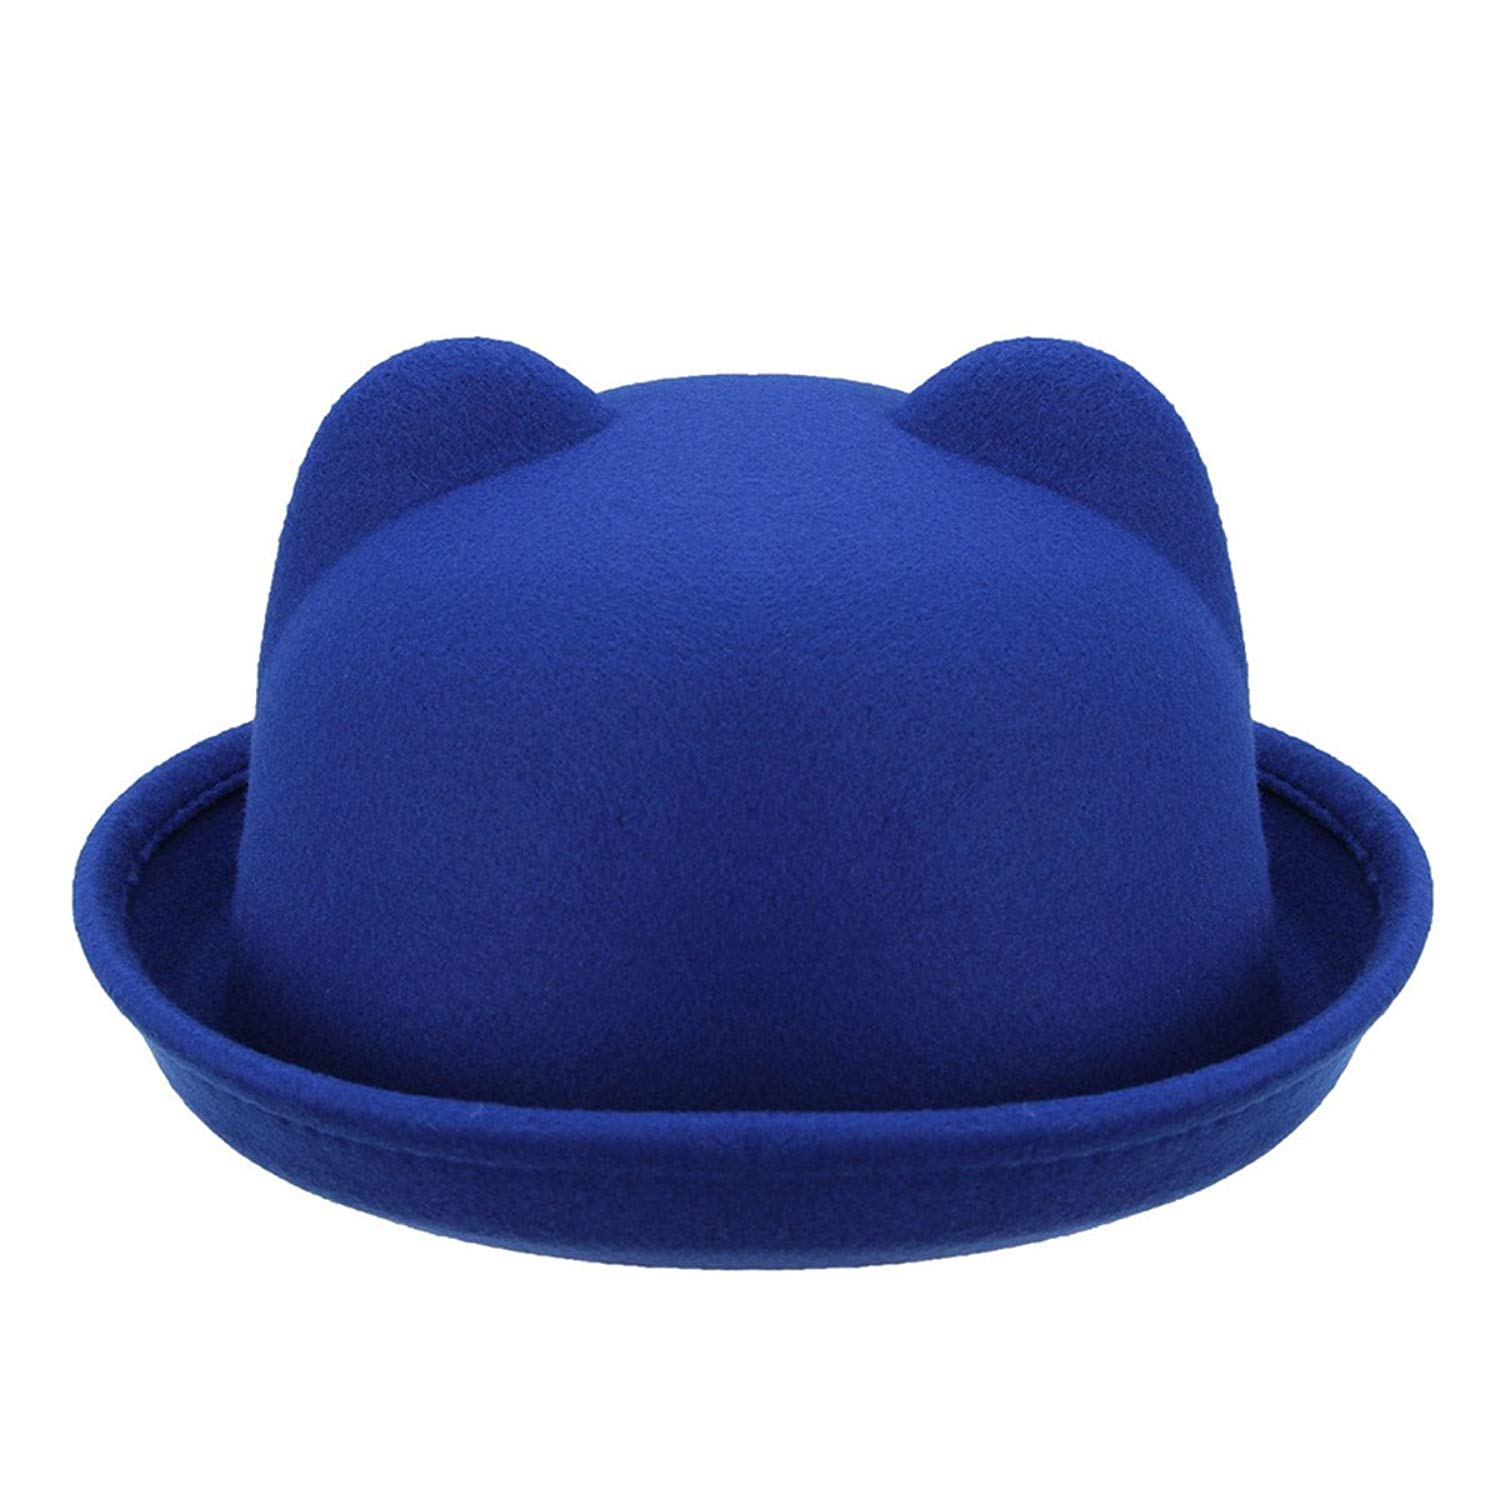 a780ee3f1ea Get Quotations · ECYC Women Cute Solid Color Bowler   Derby Fedora Formal  Hats With Ears